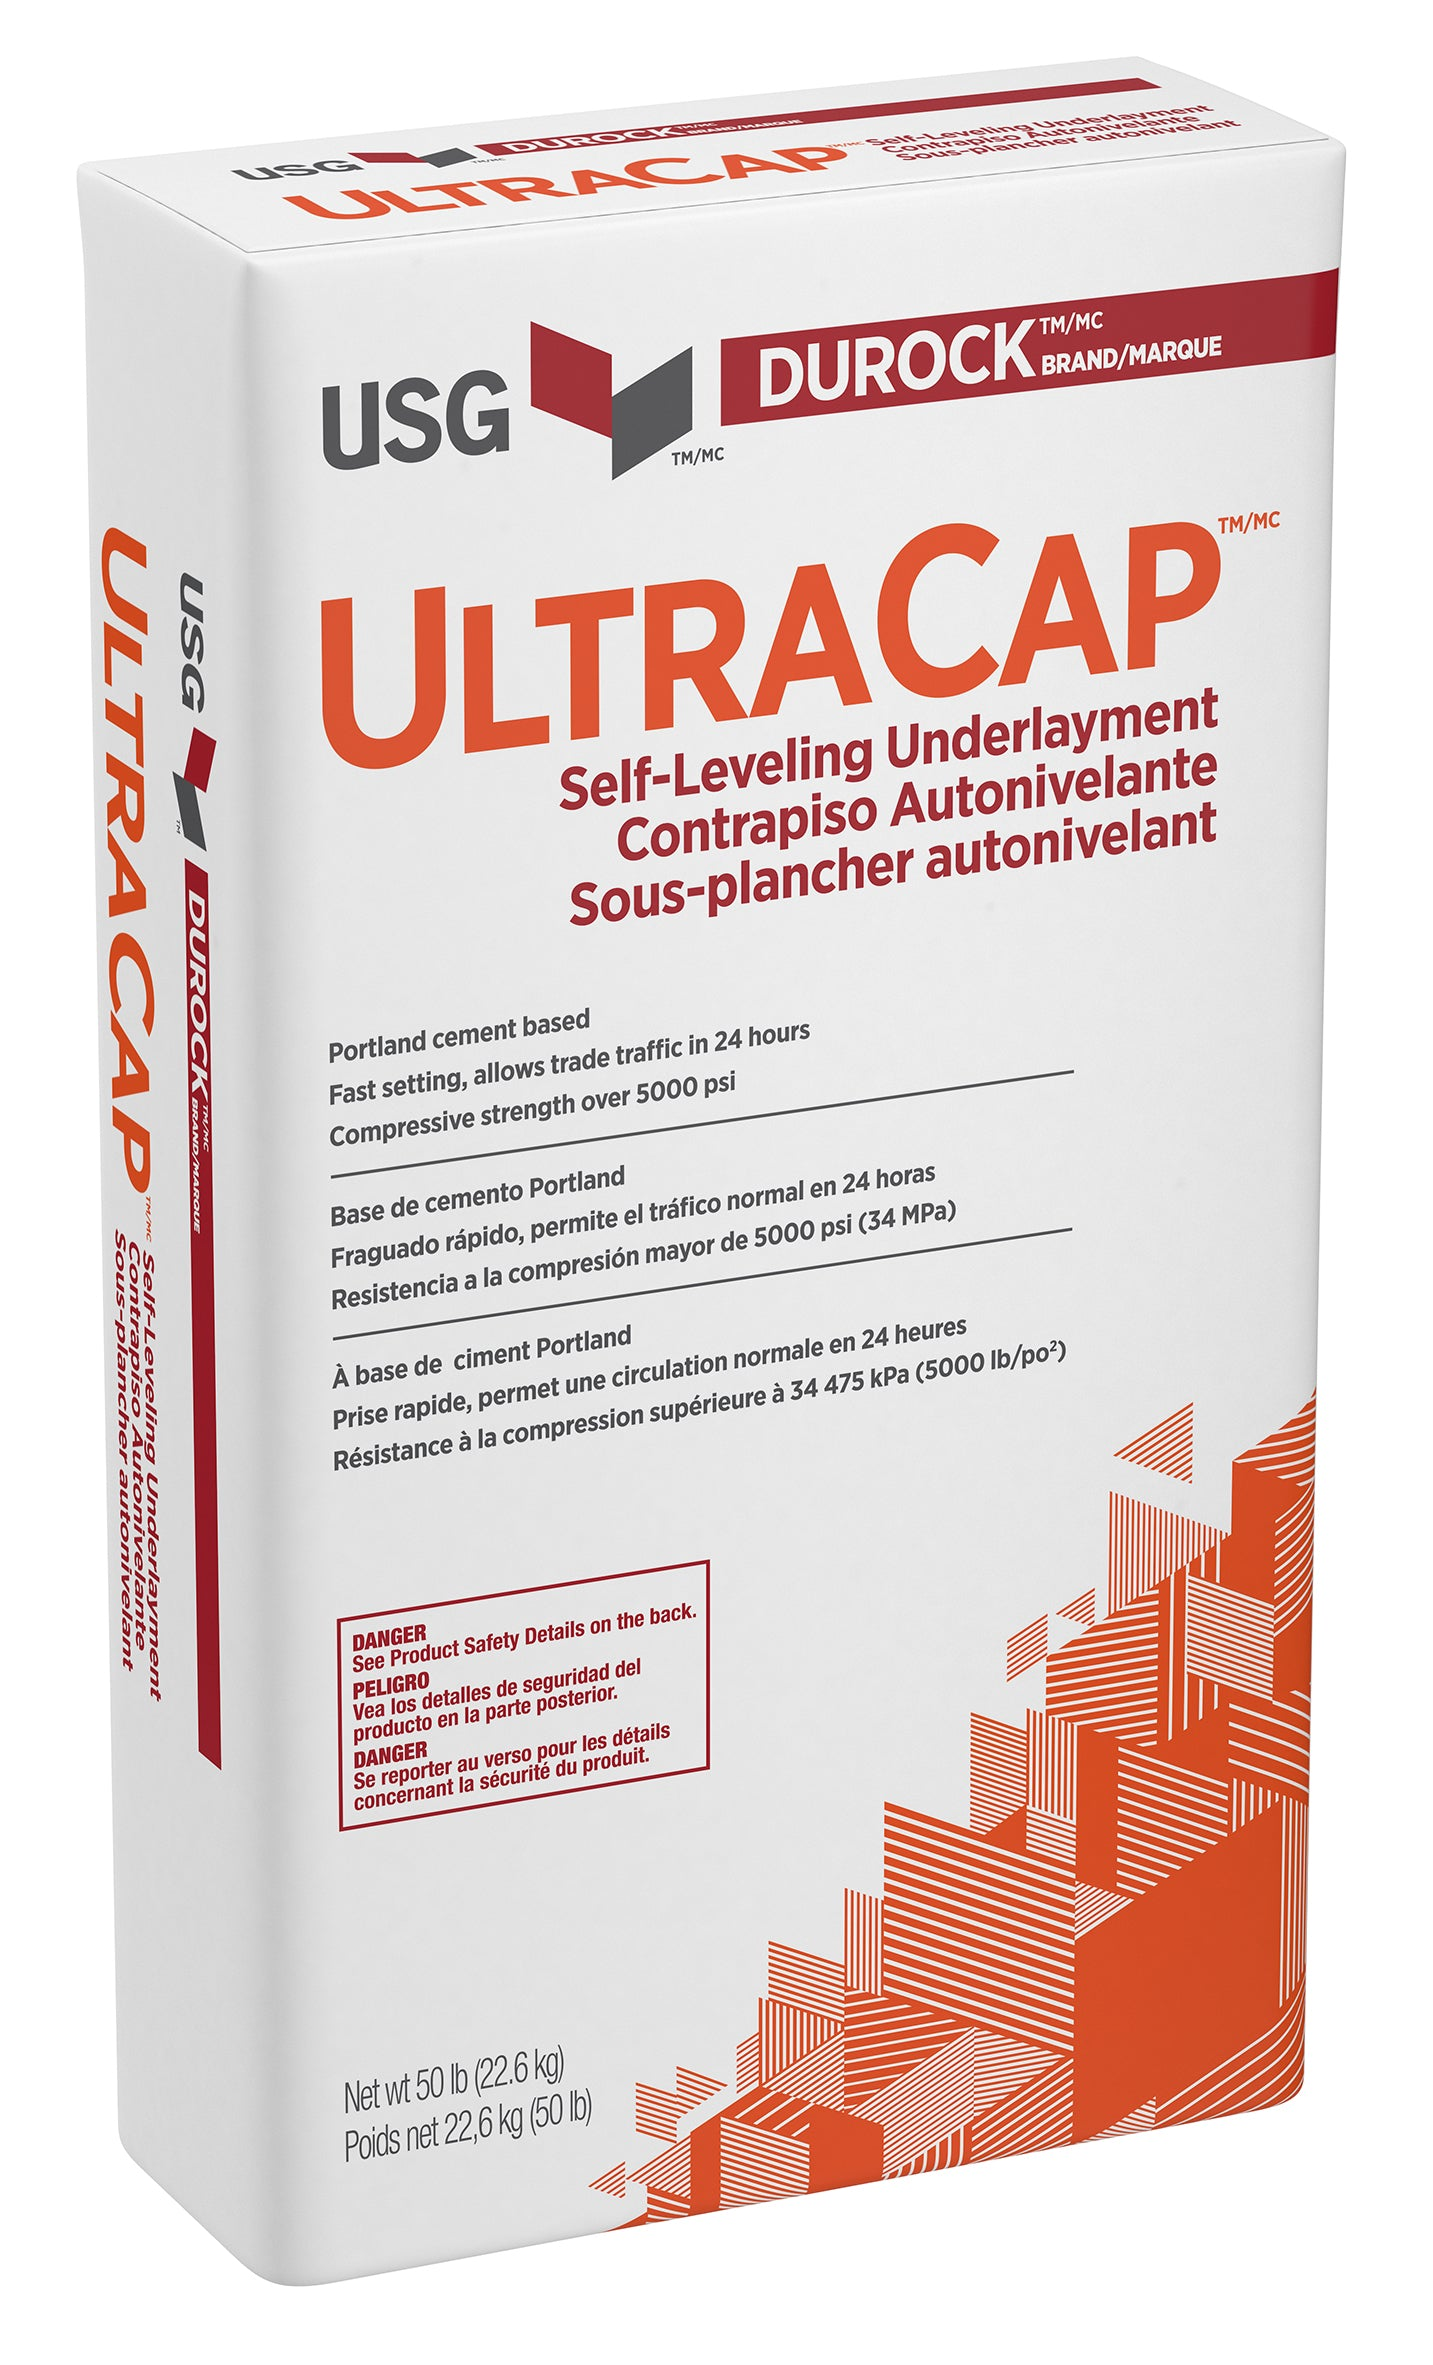 USG UltraCap Self-Leveling Underlayment 50 lb bag